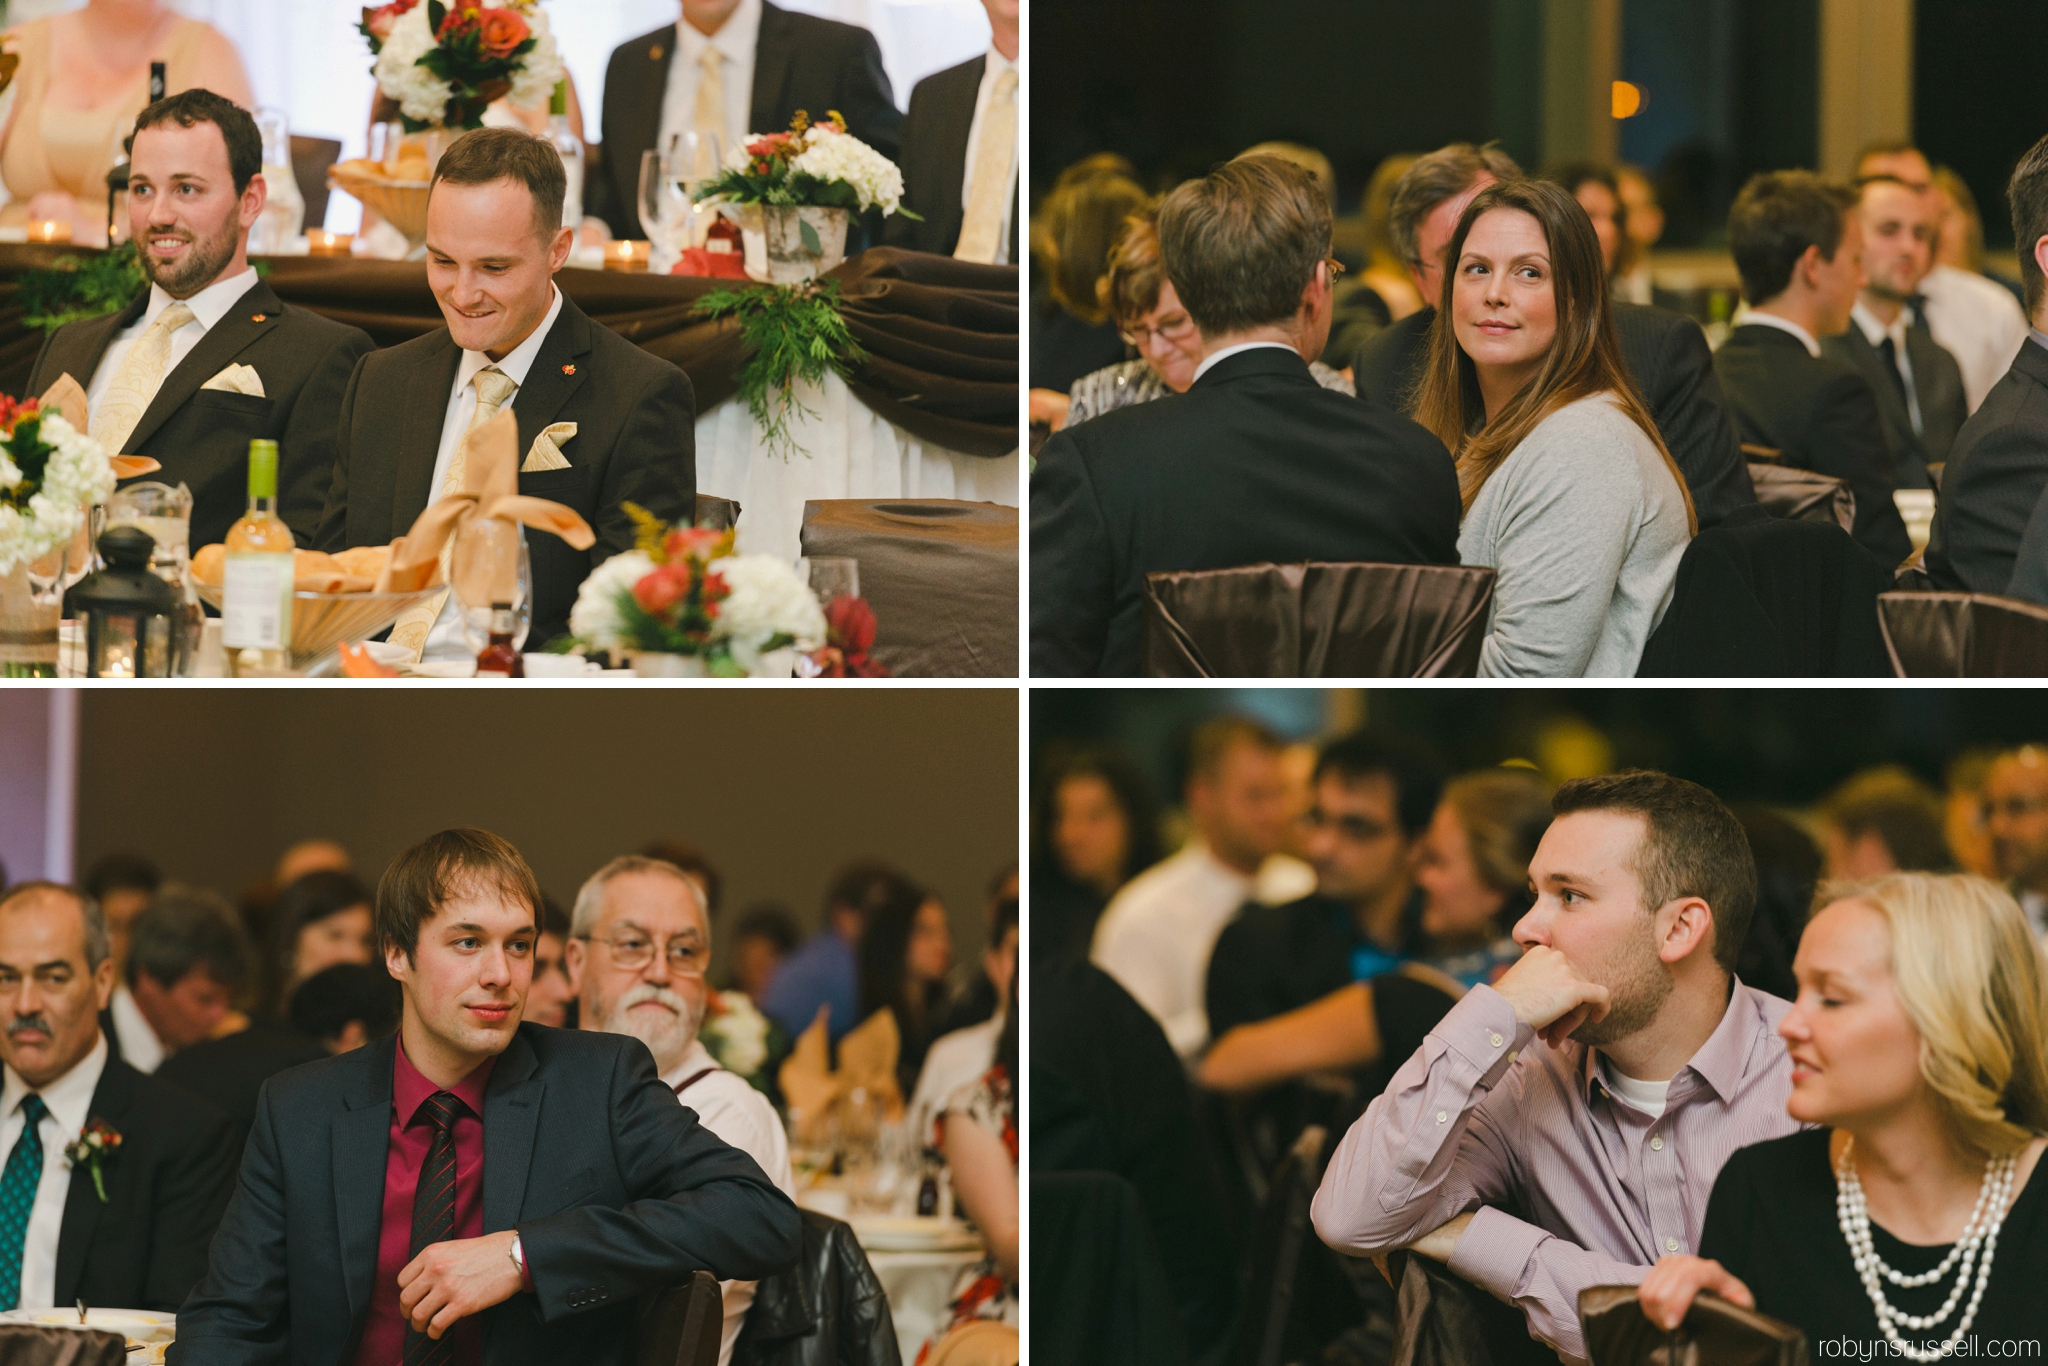 59-guests-during-wedding-reception.jpg